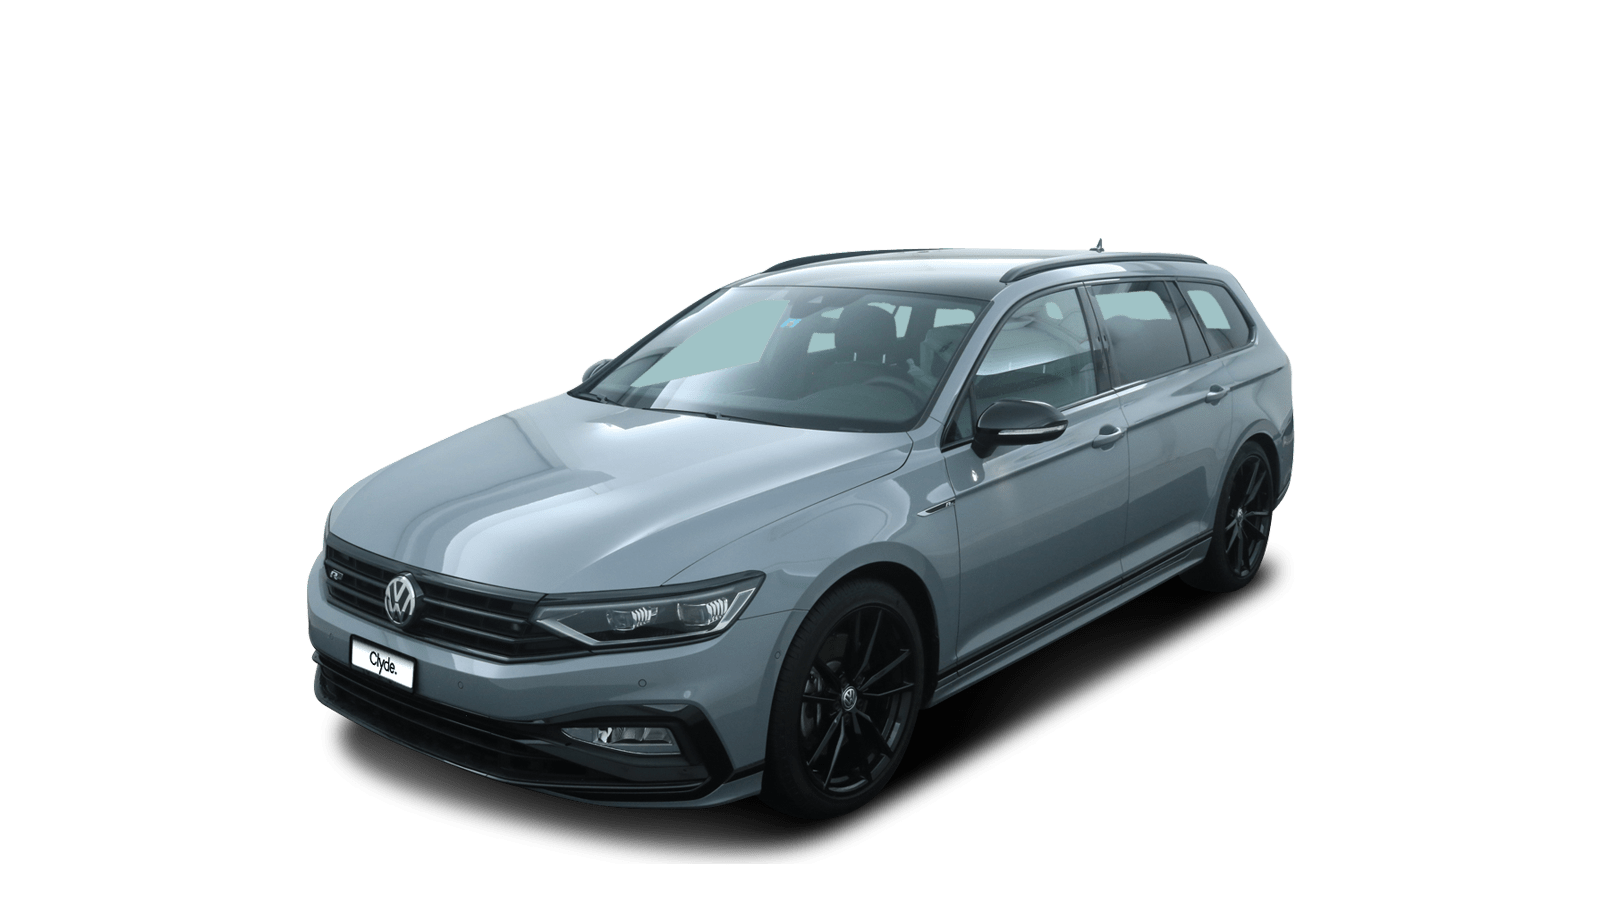 VW Passat Variant Grey front - Clyde car subscription